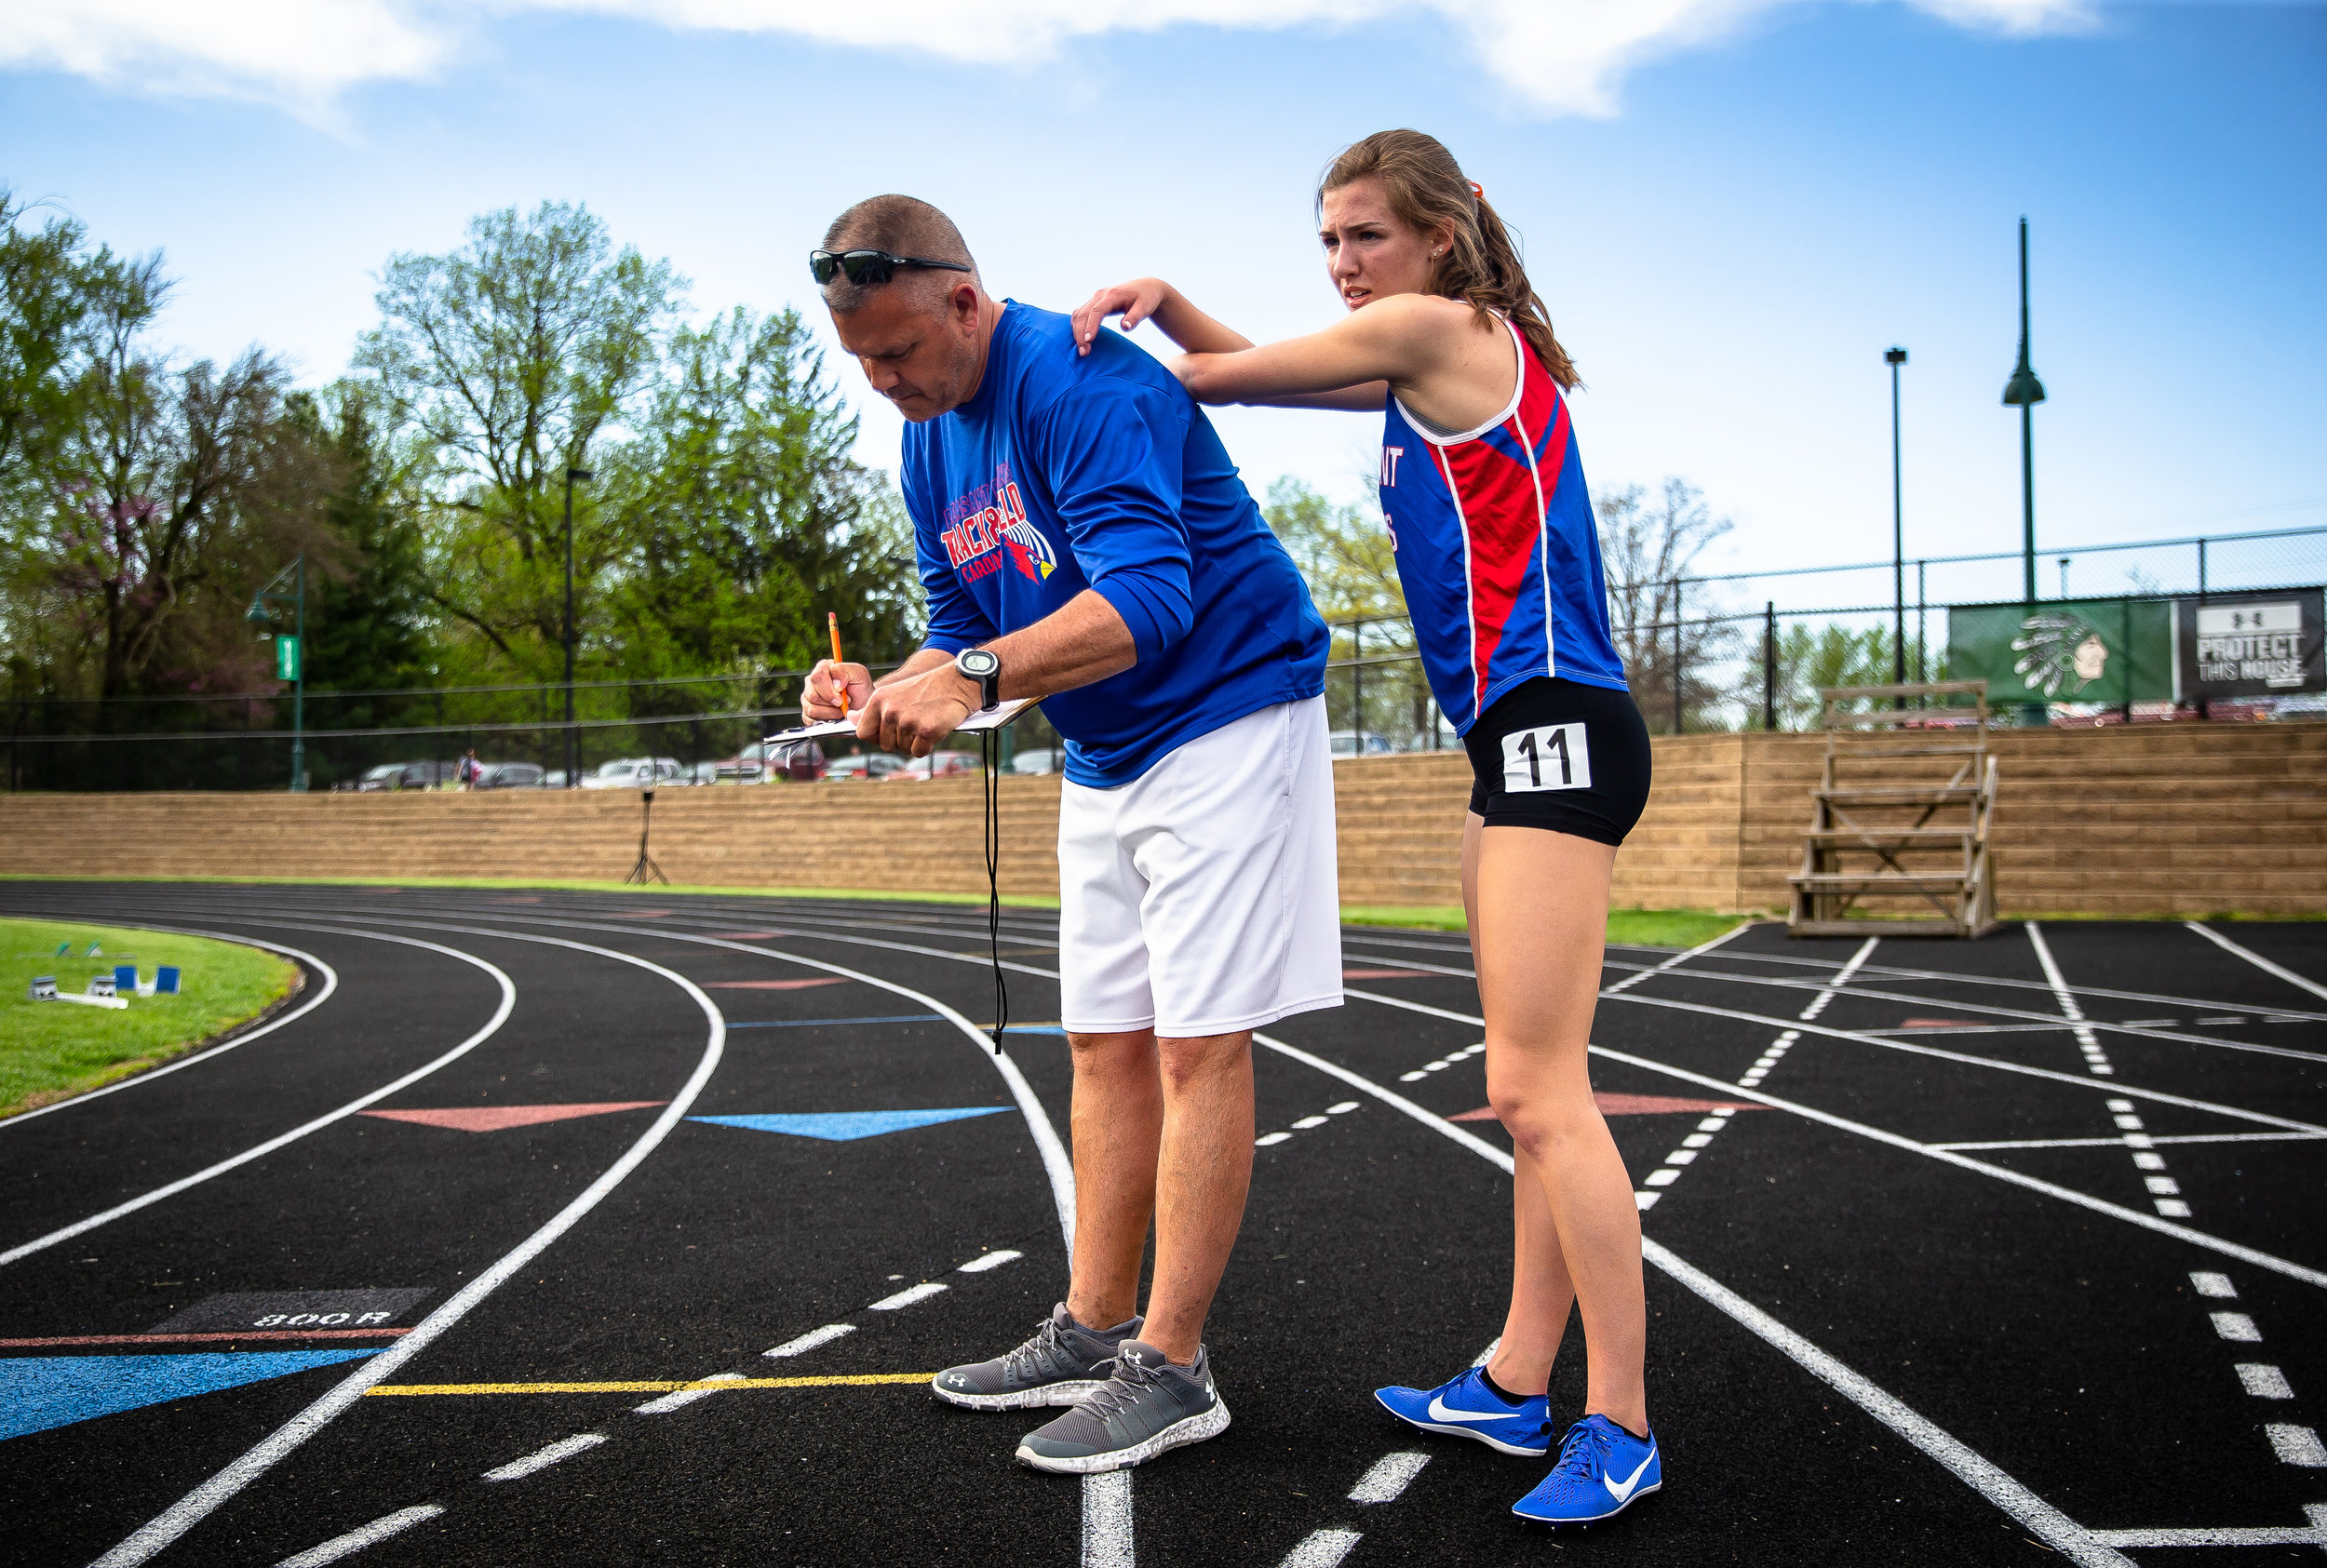 Pleasant Plains' Caroline Jachino gets a little help in recovering from Pleasant Plains girls track and field coach Rob Havens after winning the Girls 3200m Run with a time of 11:29.88 during the Sangamon County Track & Field Meet at Athens High School, Friday, May 4, 2018, in Athens, Ill. [Justin L. Fowler/The State Journal-Register]